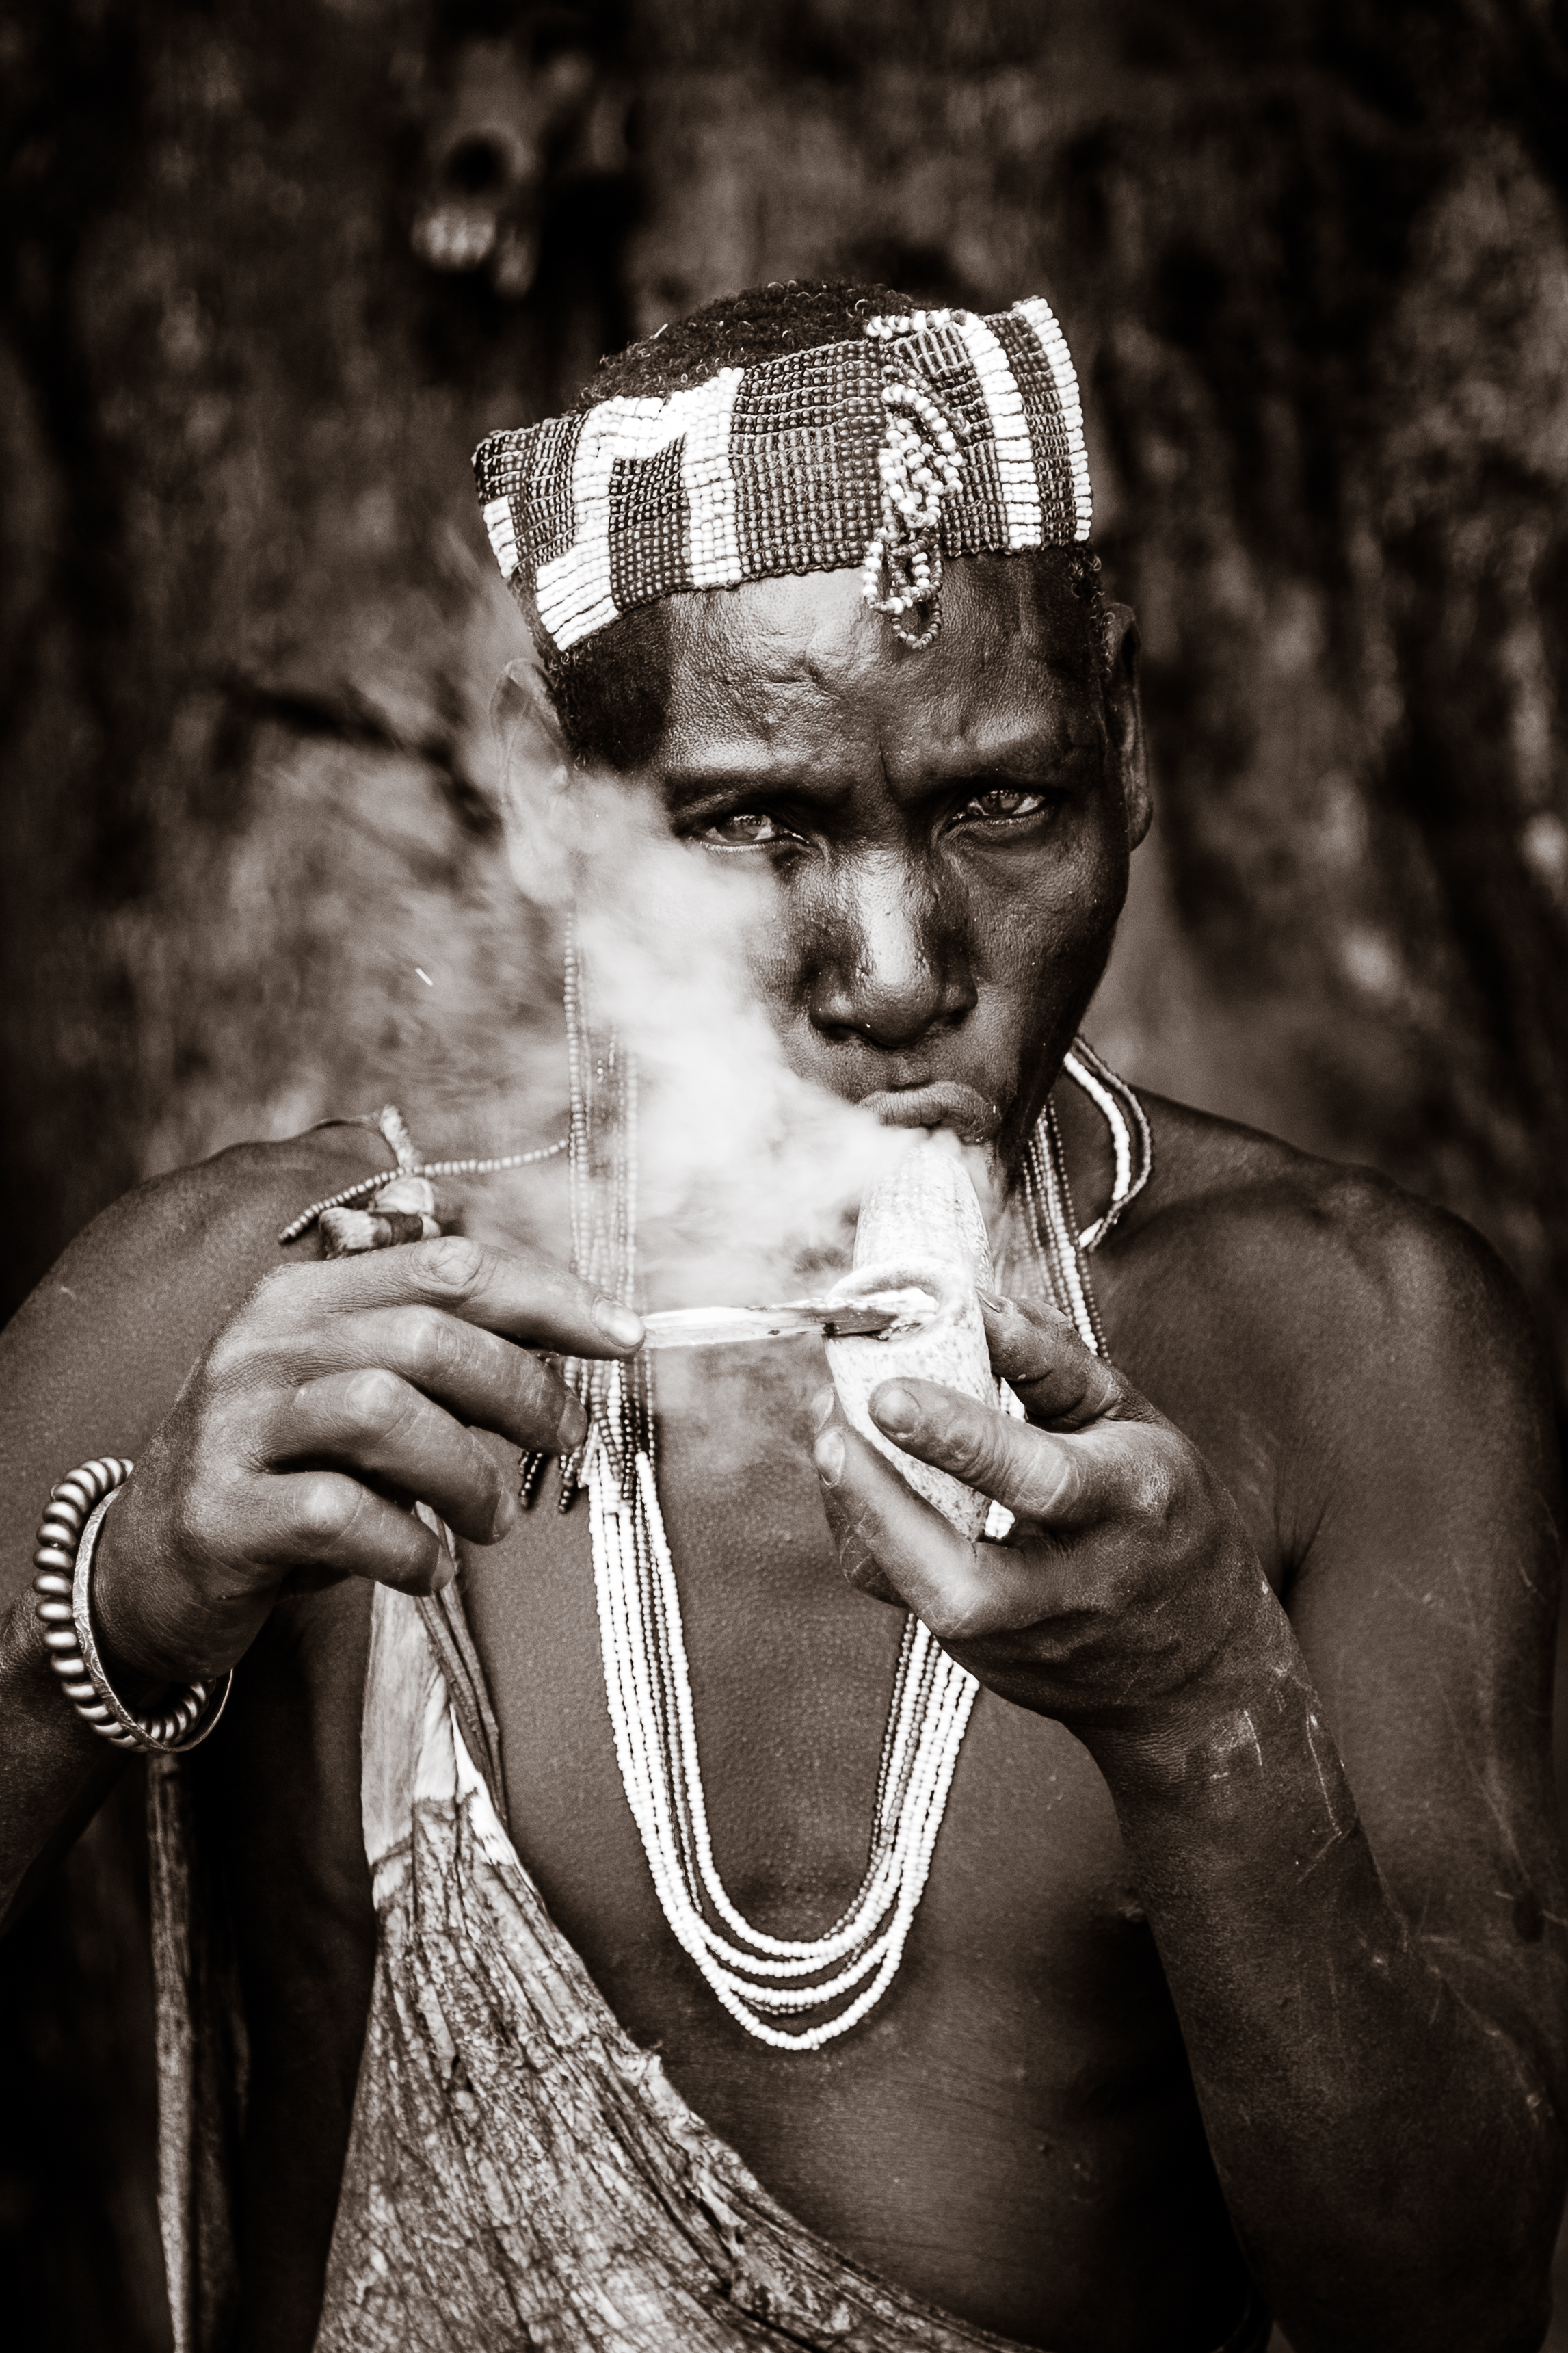 Guy Needham - Hadzabe Smoker